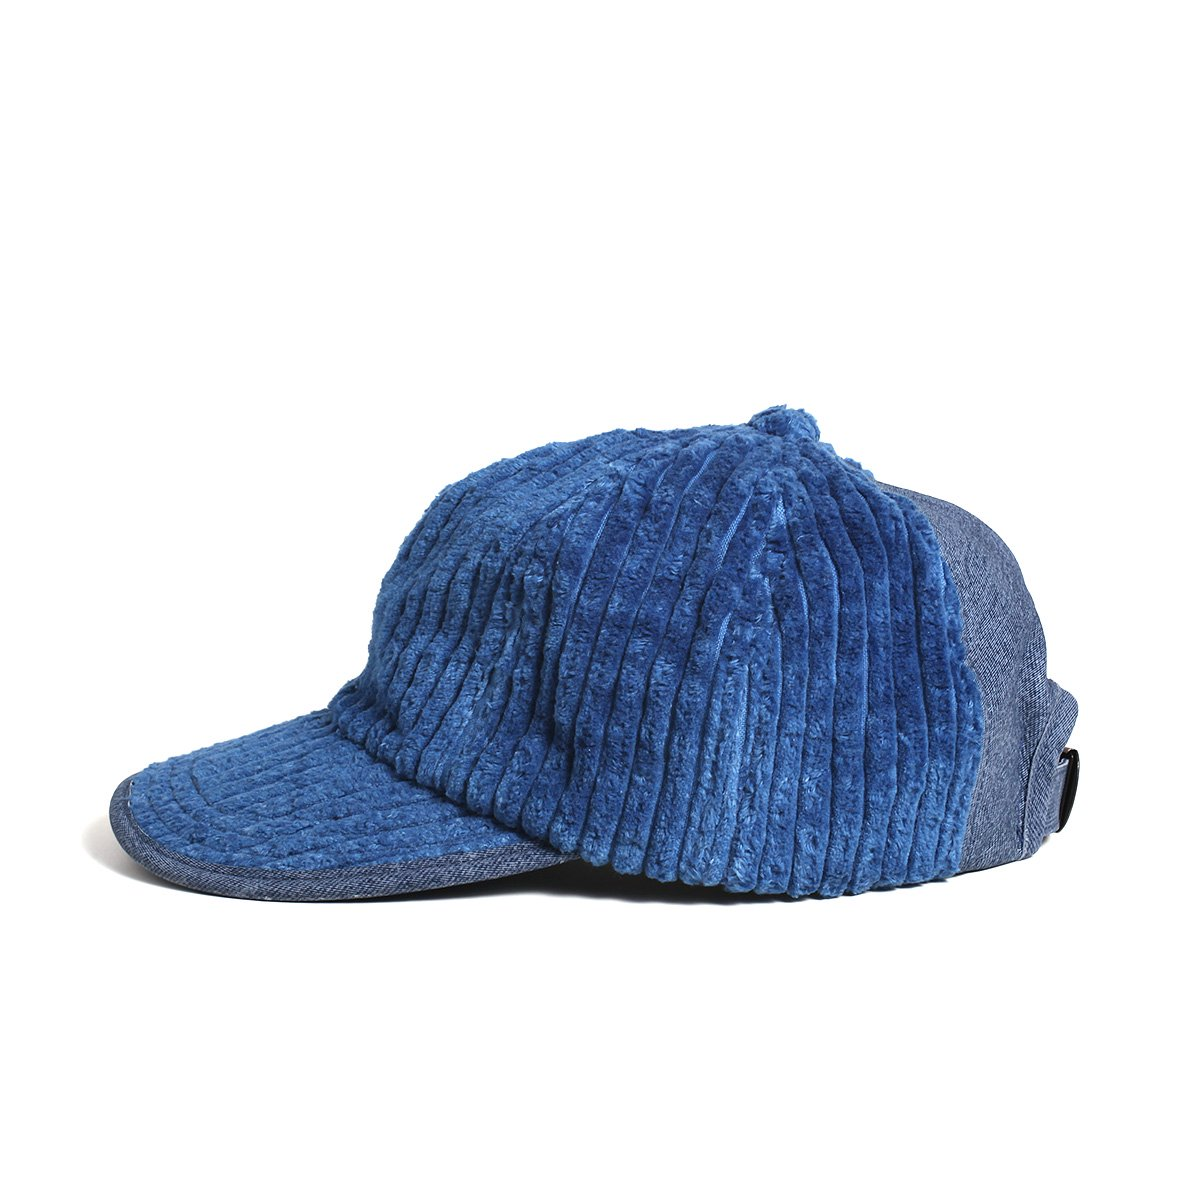 【SALE】LEATHER COMBI CORDUROY 8PANEL CAP 詳細画像1